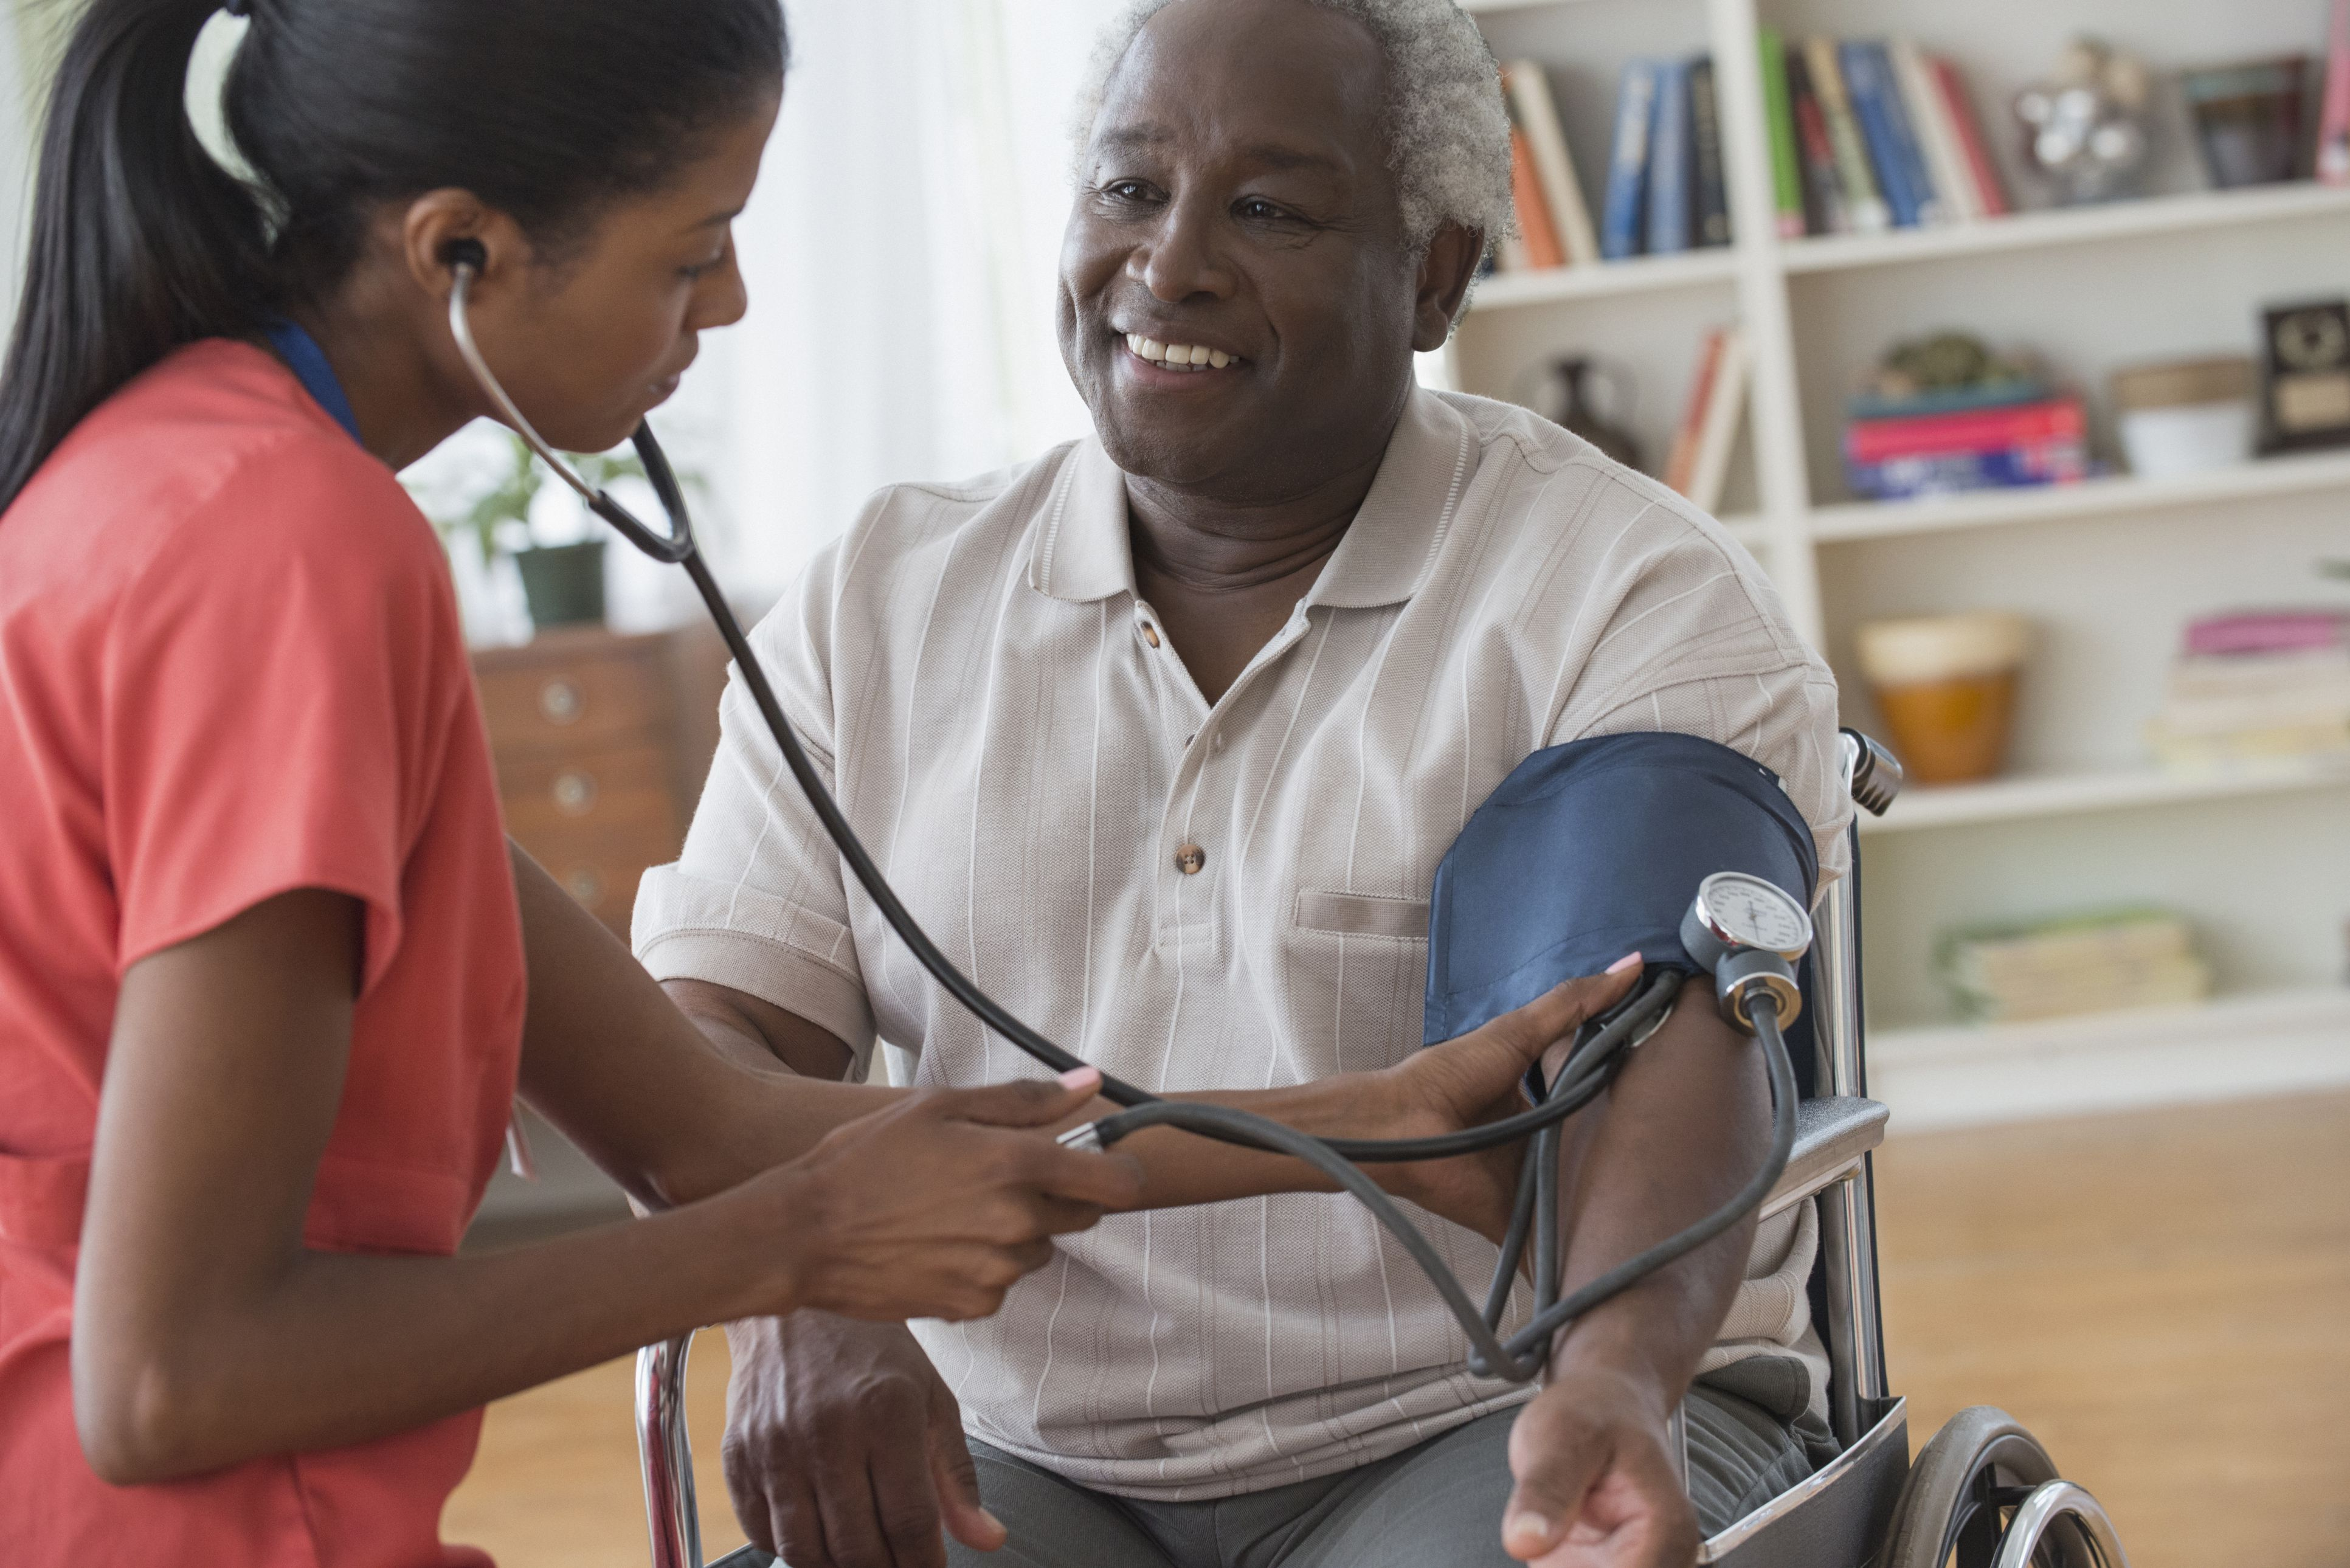 Determining if You Have Hypertension